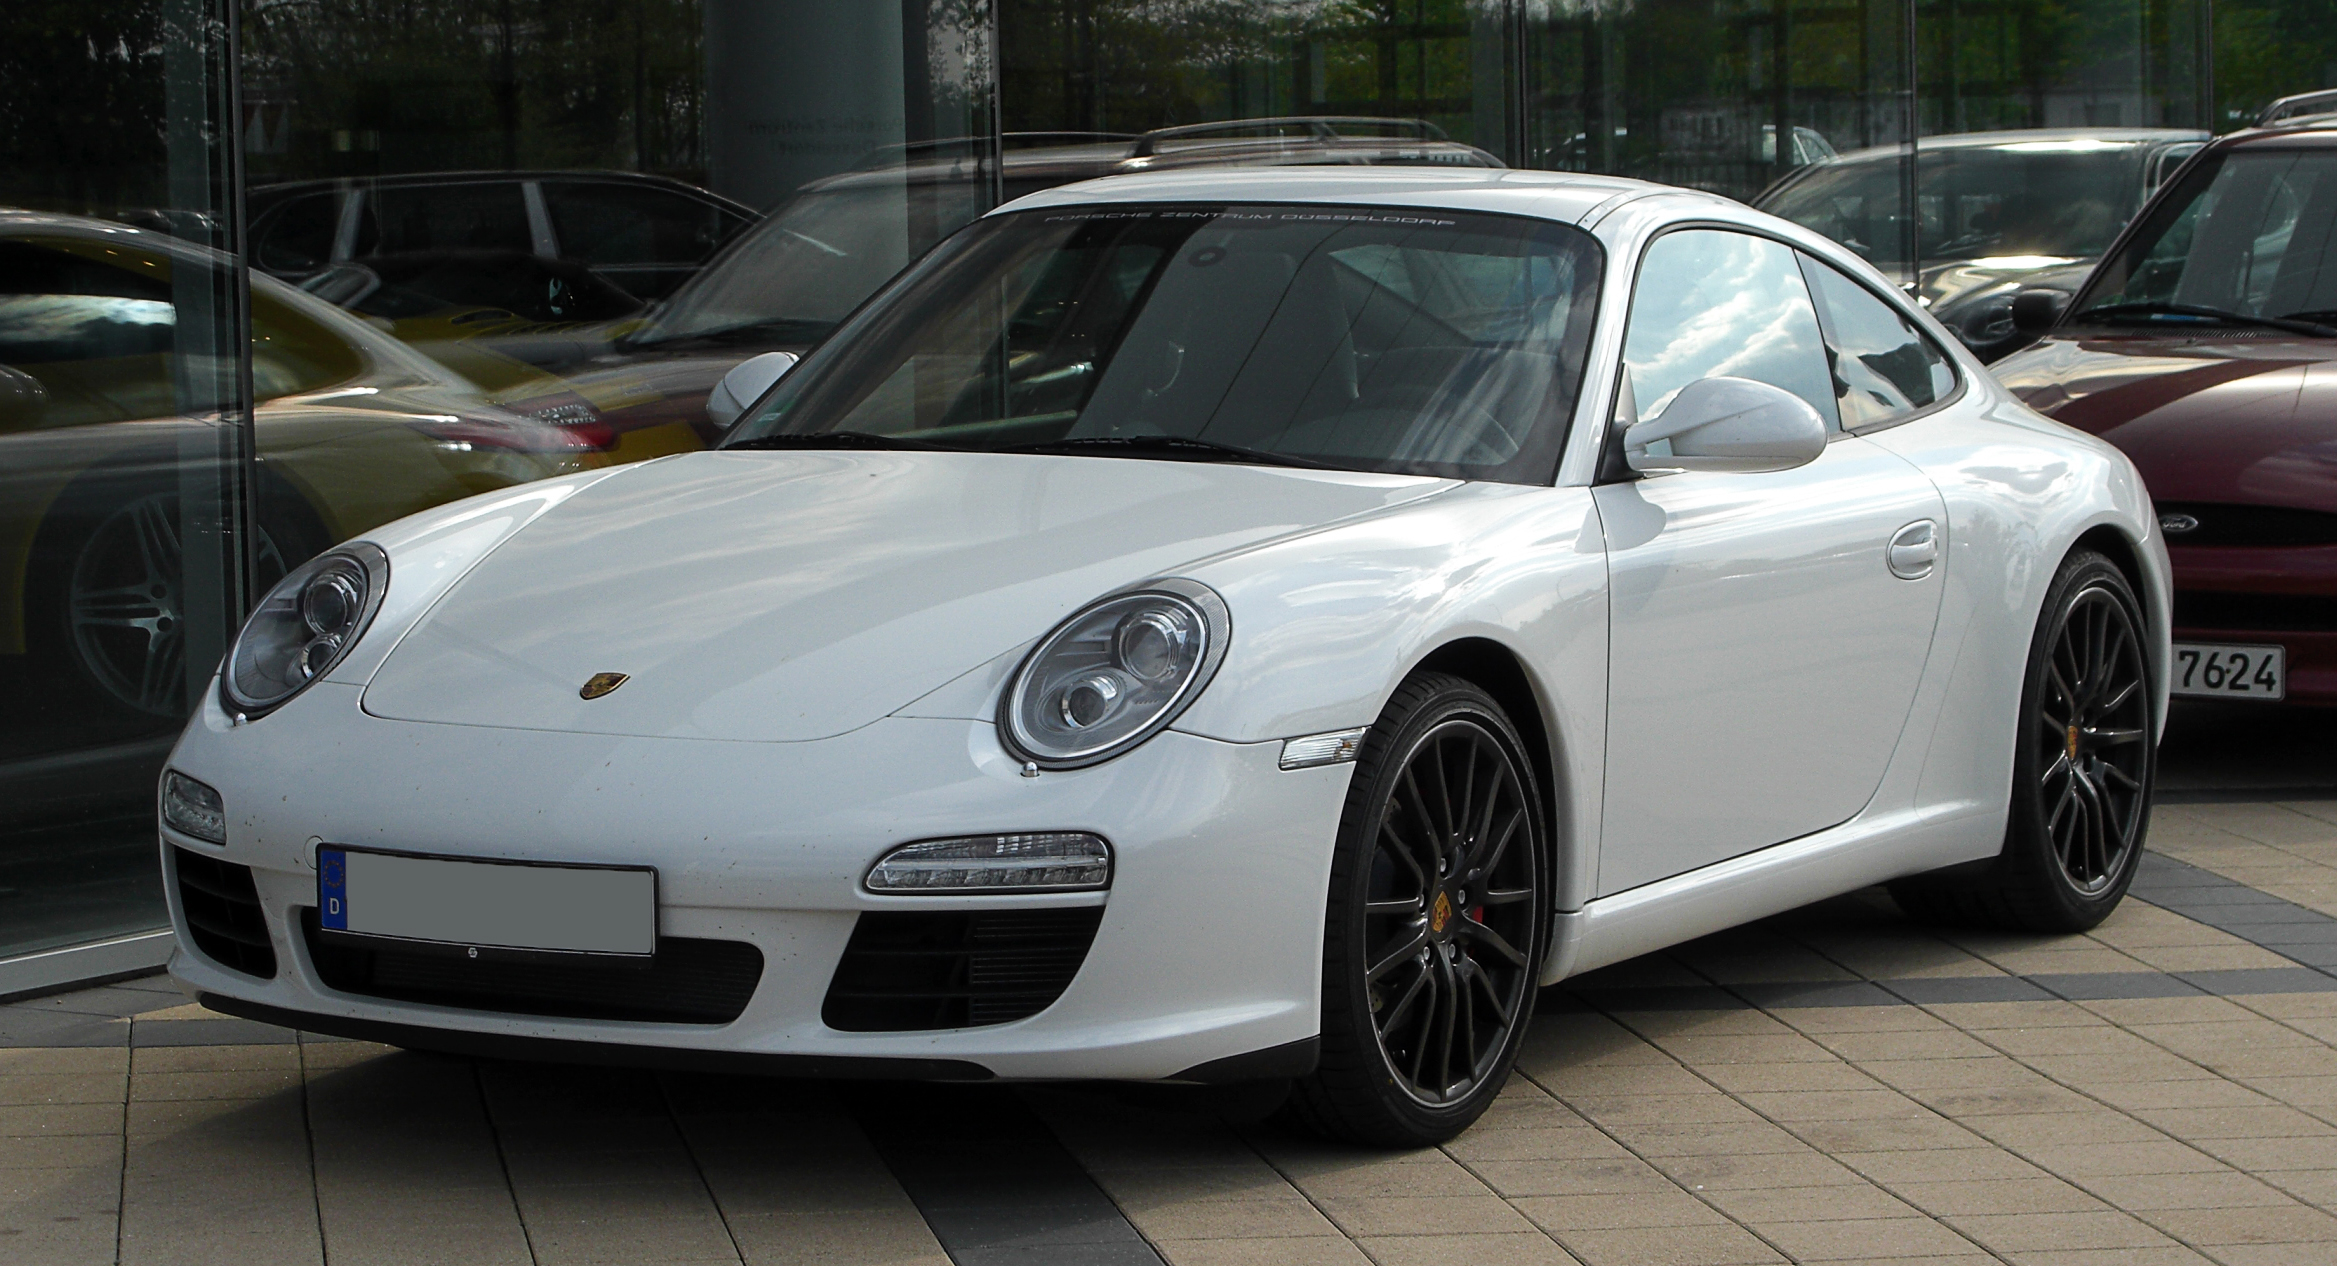 porsche 997 are boxer engines reliable past 100000 miles rennlist. Black Bedroom Furniture Sets. Home Design Ideas